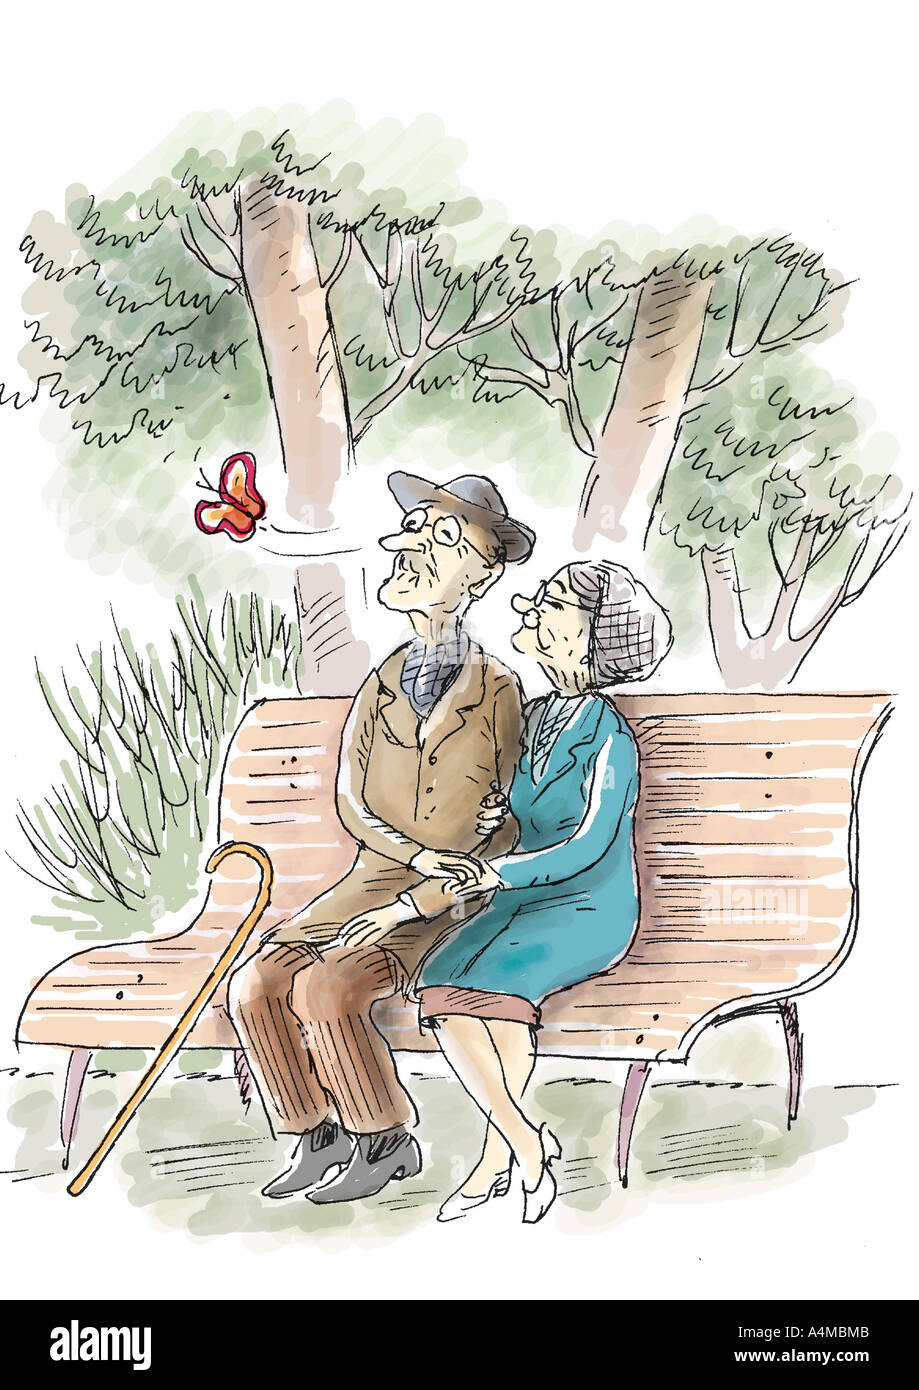 Elderly couple sitting on bench watching butterfly - Stock Image